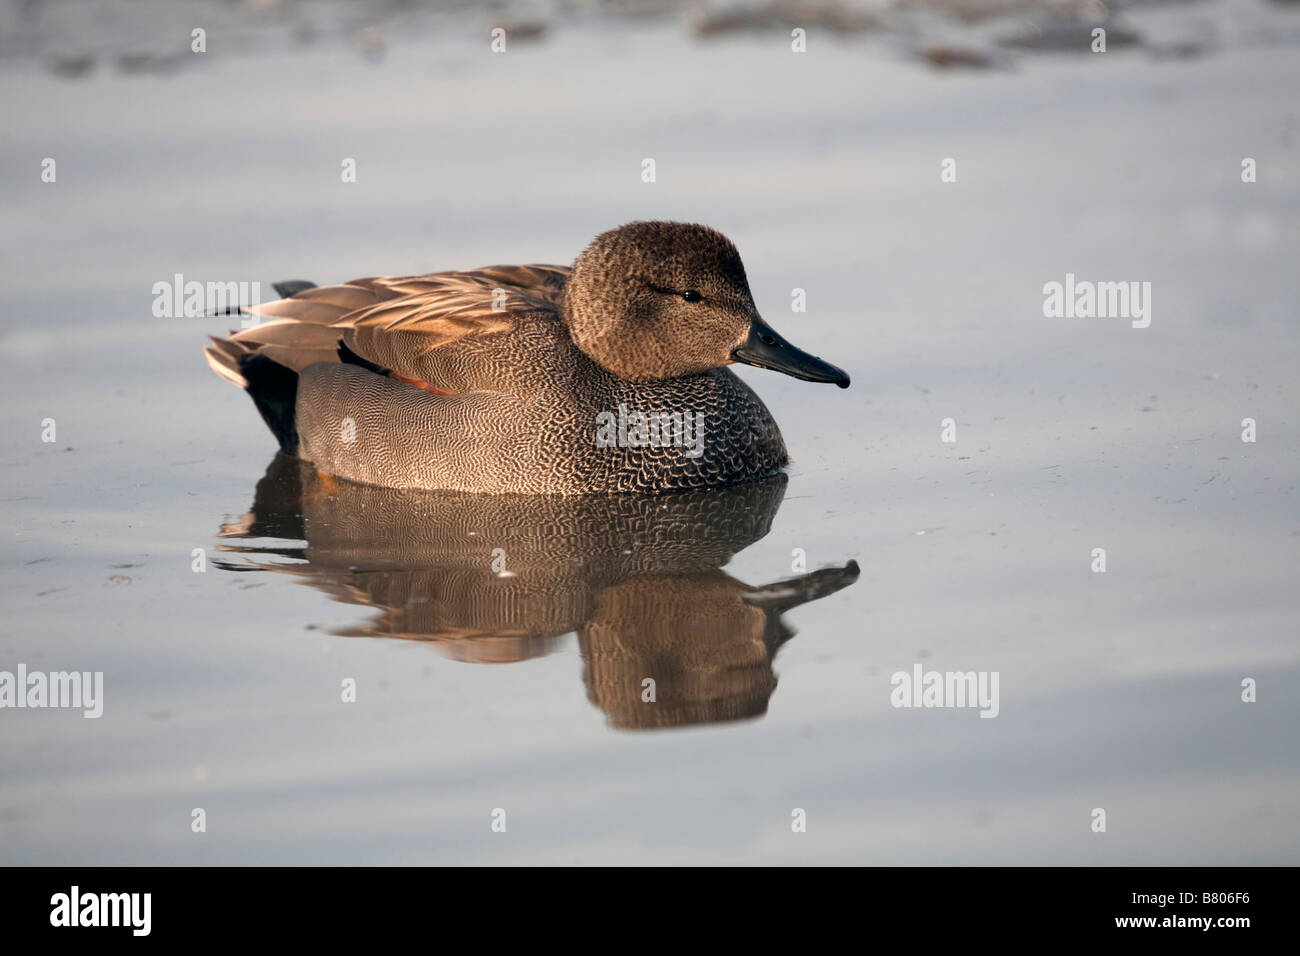 gadwall Anas strepera male on water - Stock Image